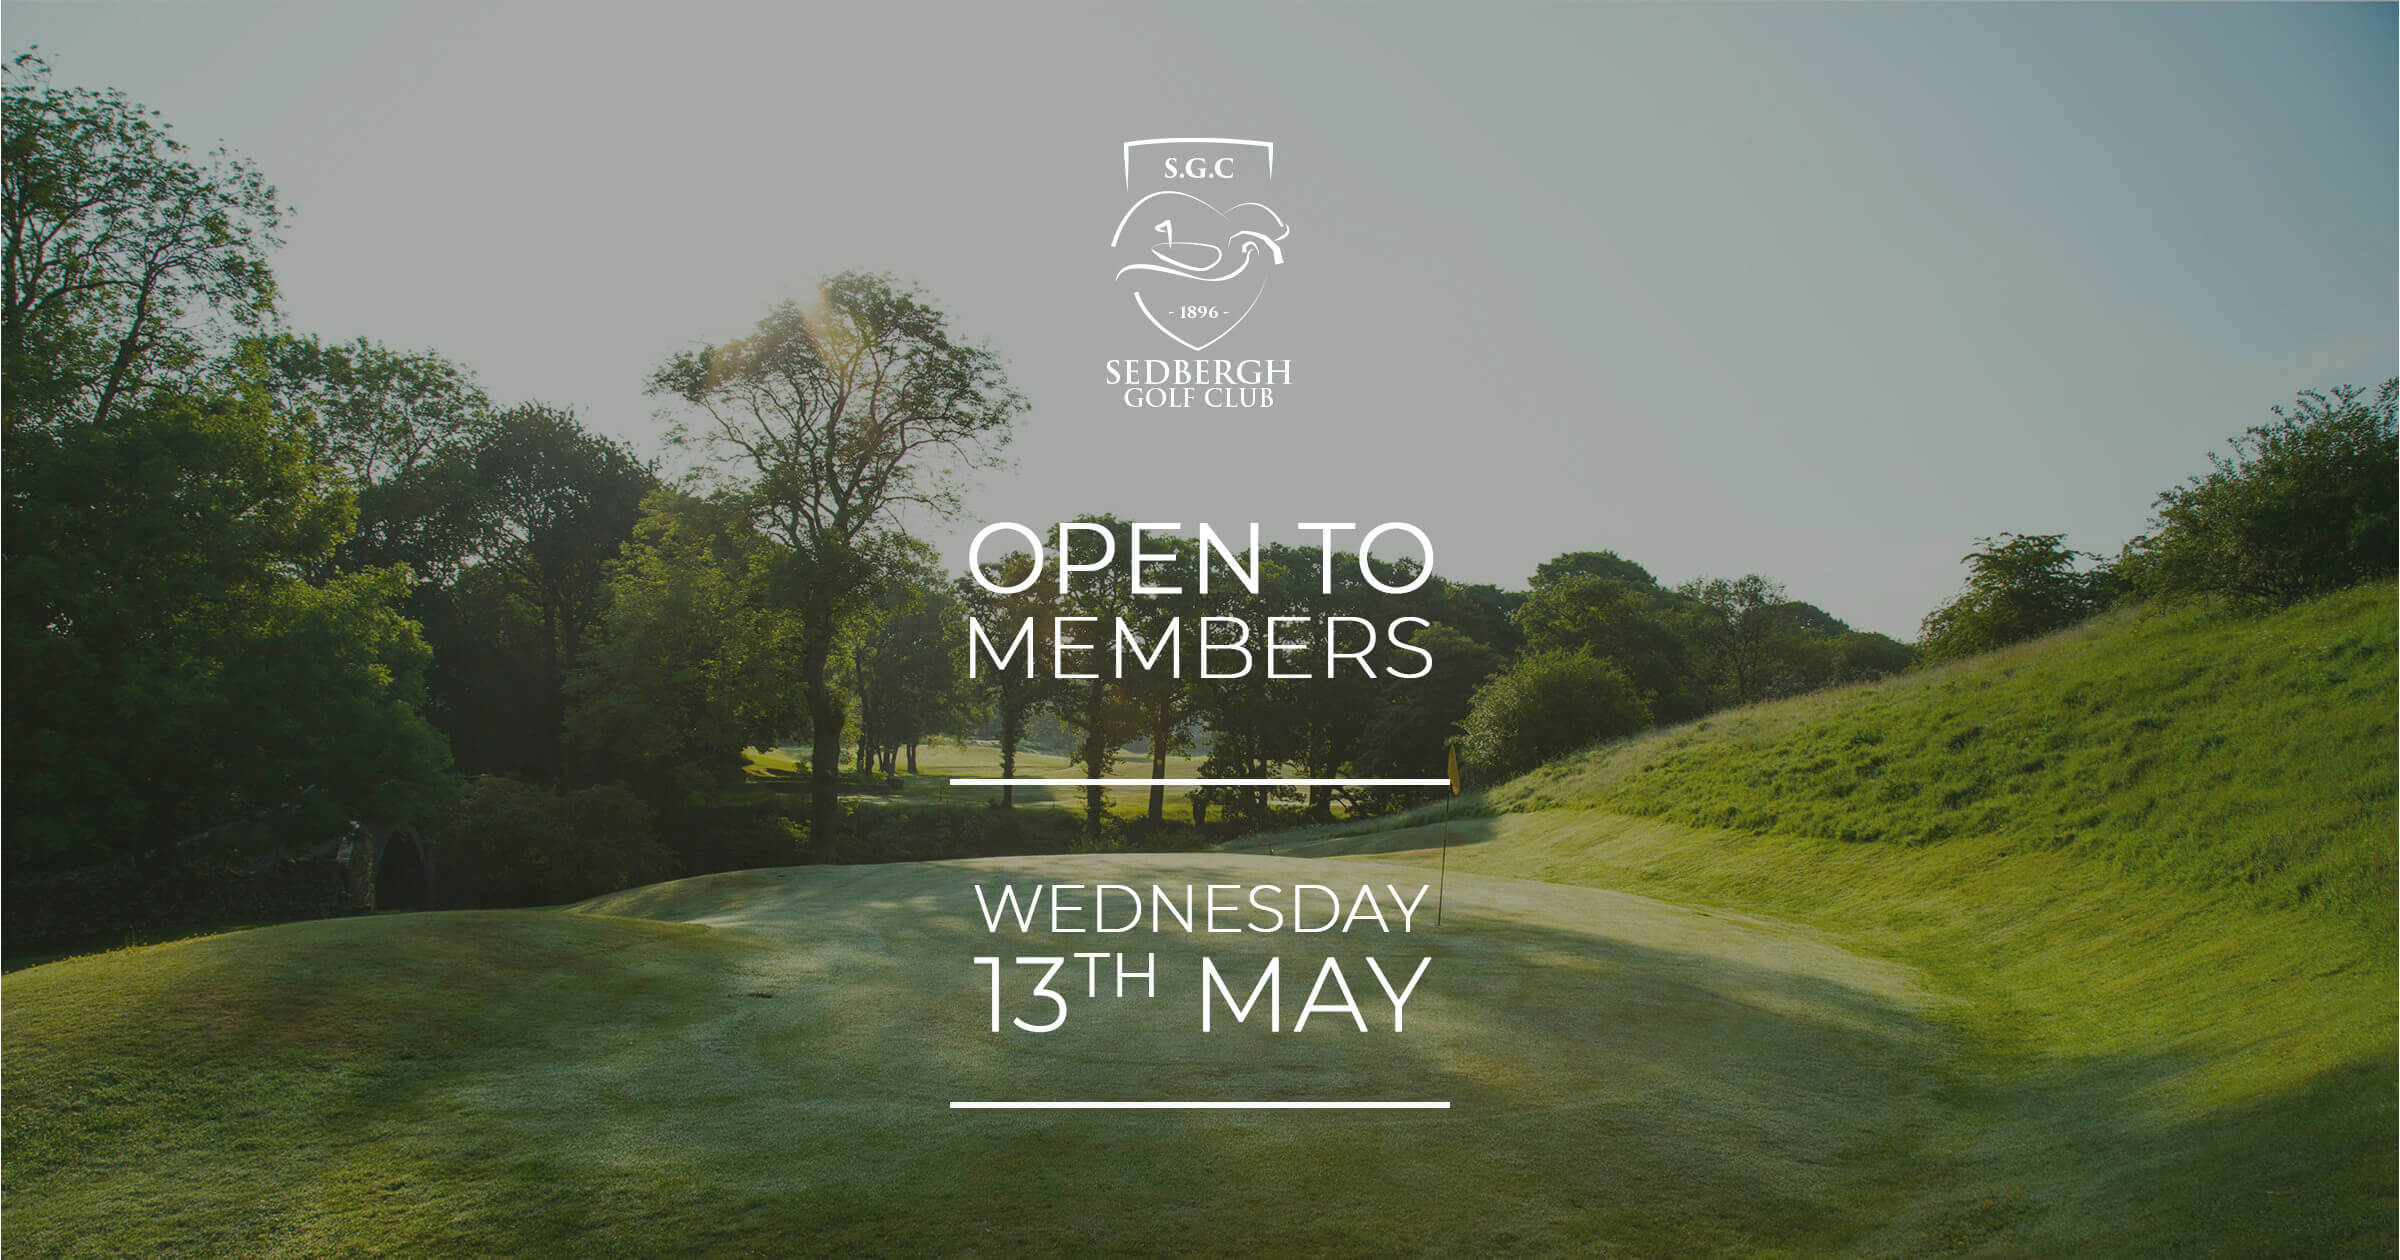 We're pleased to be able to announce that the golf course will open to members on Wednesday 13th May in line with guidance from England Golf. It is absolutely essential that all members comply with the rules and guidance that we have set so that we can maintain a safe environment for staff and fellow members